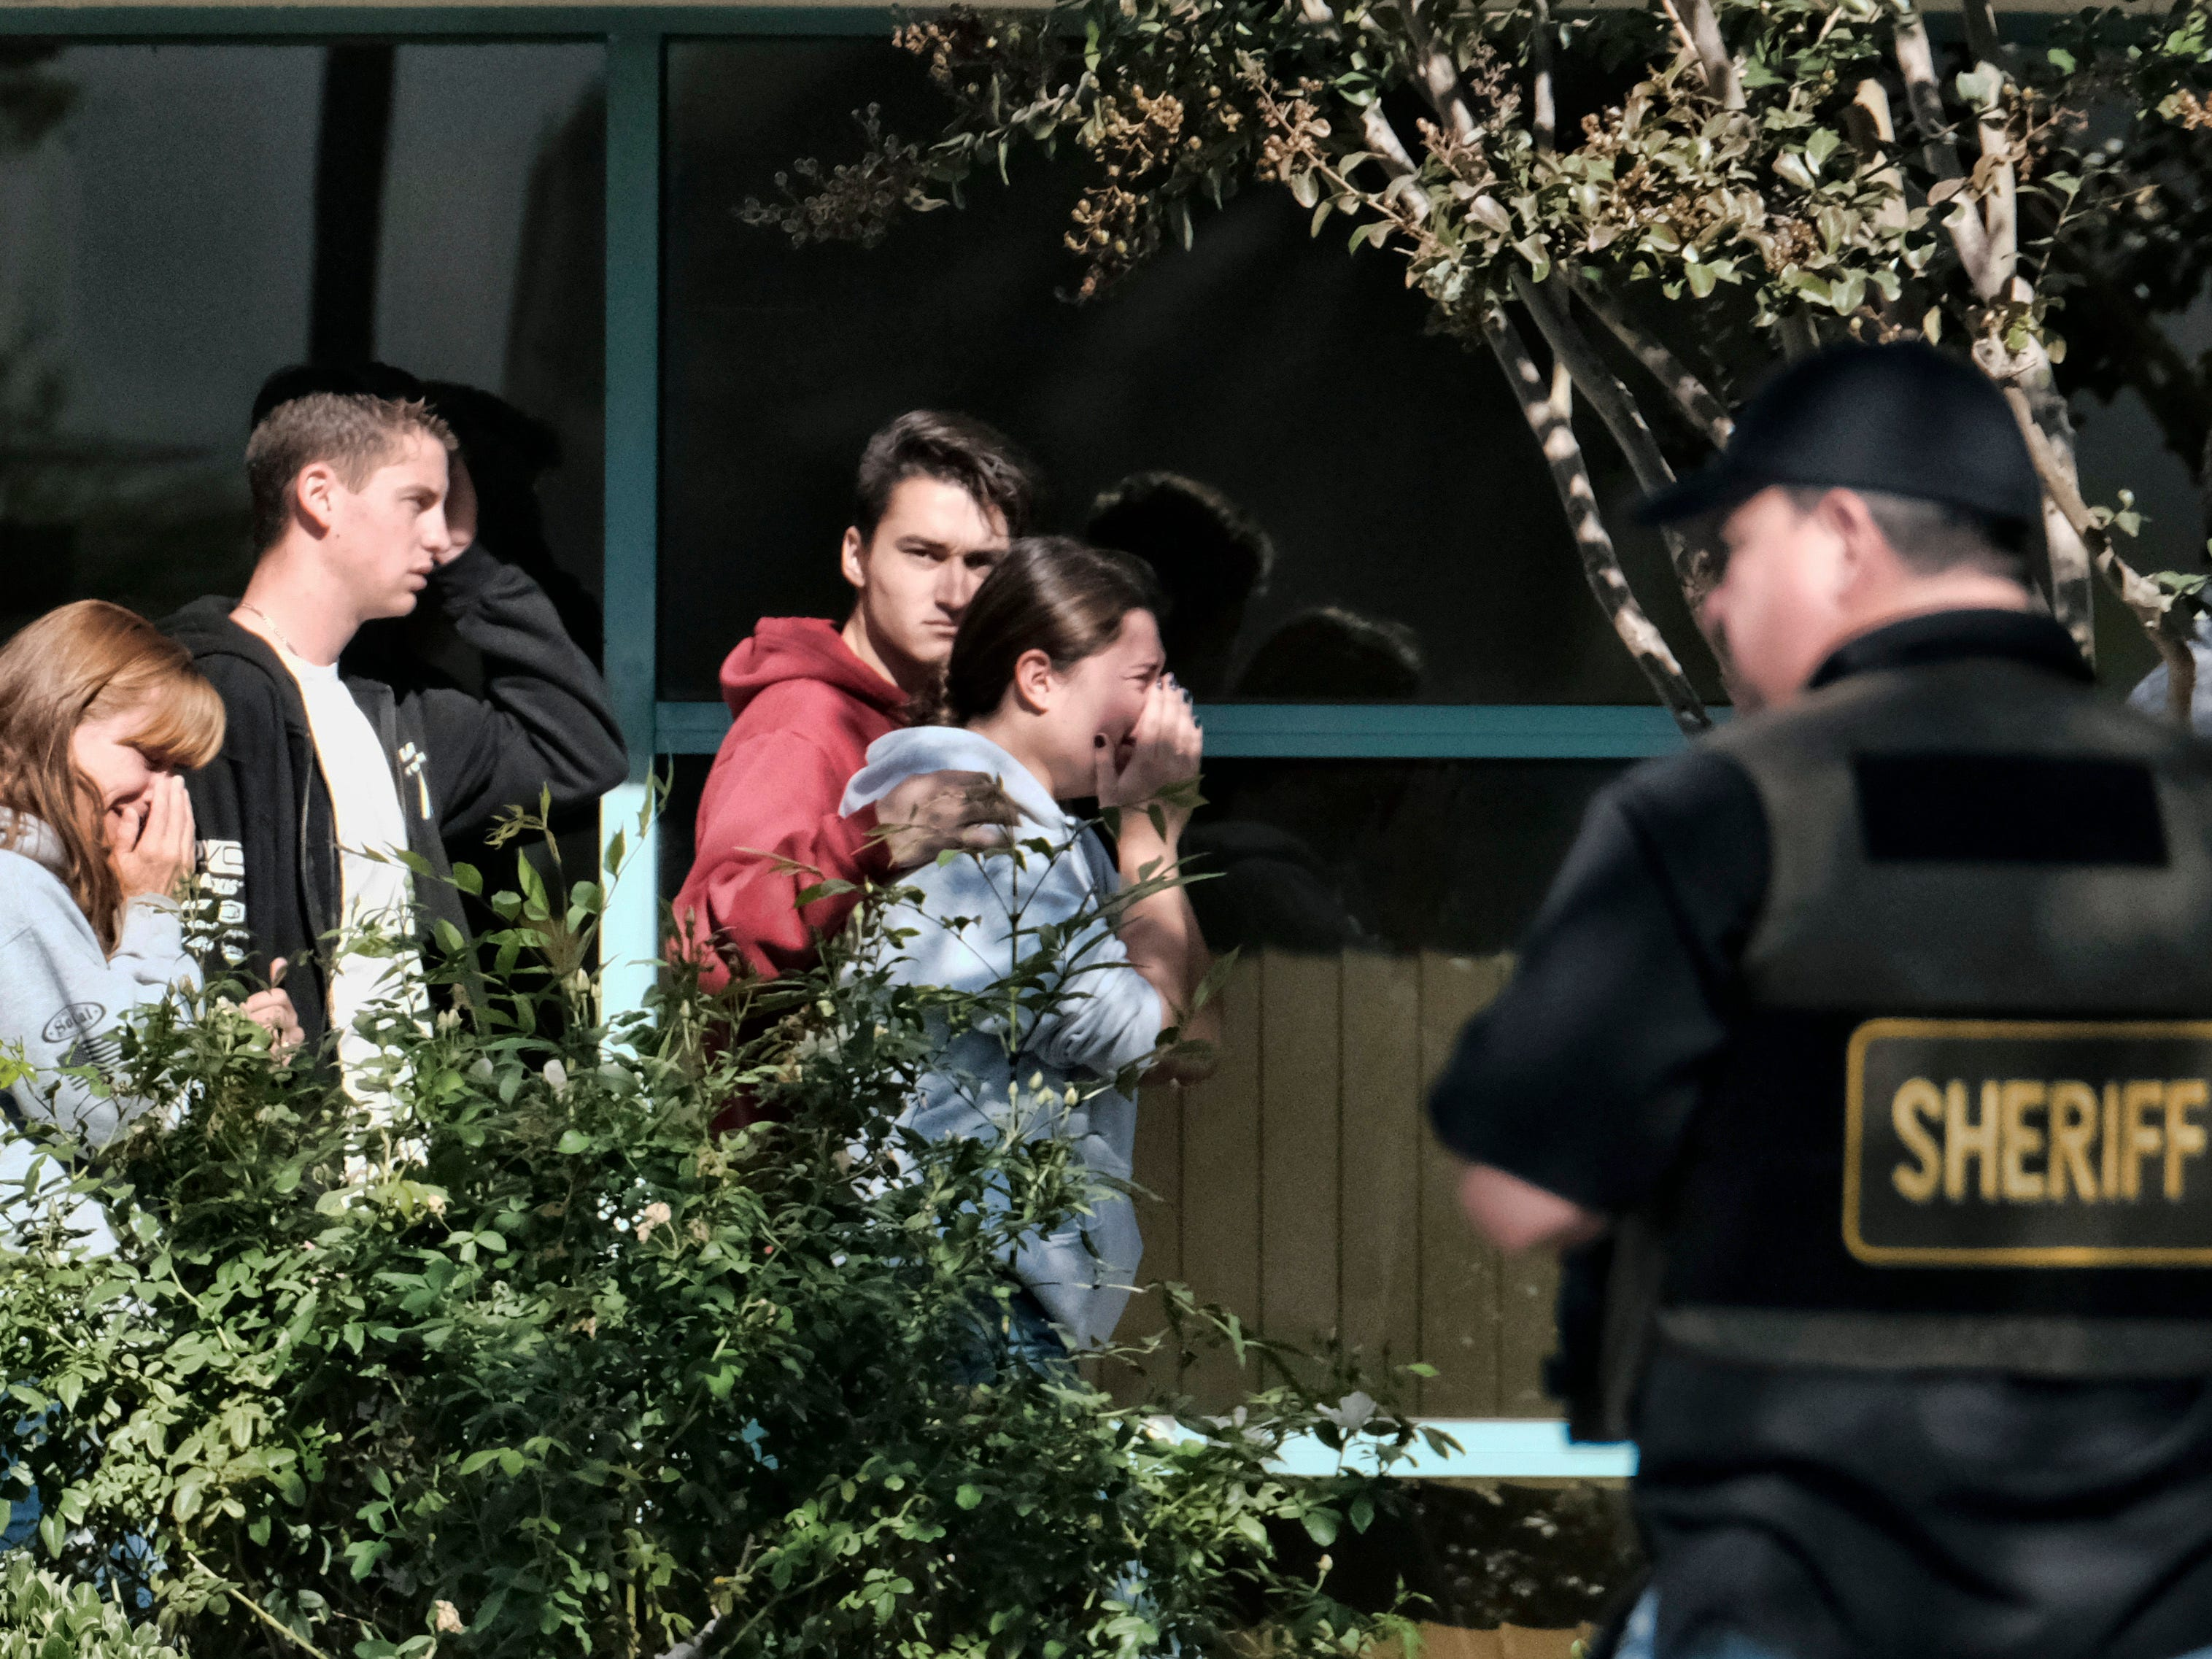 Grieving people are led into the Thousand Oaks Teen Center where families have gathered after a deadly shooting at a bar on Thursday, Nov. 8, 2018, in Thousand Oaks, Calif. Multiple people were shot and killed late Wednesday by the gunman who opened fire at the Borderline Bar & Grill, which was holding a weekly country music dance night for college students.